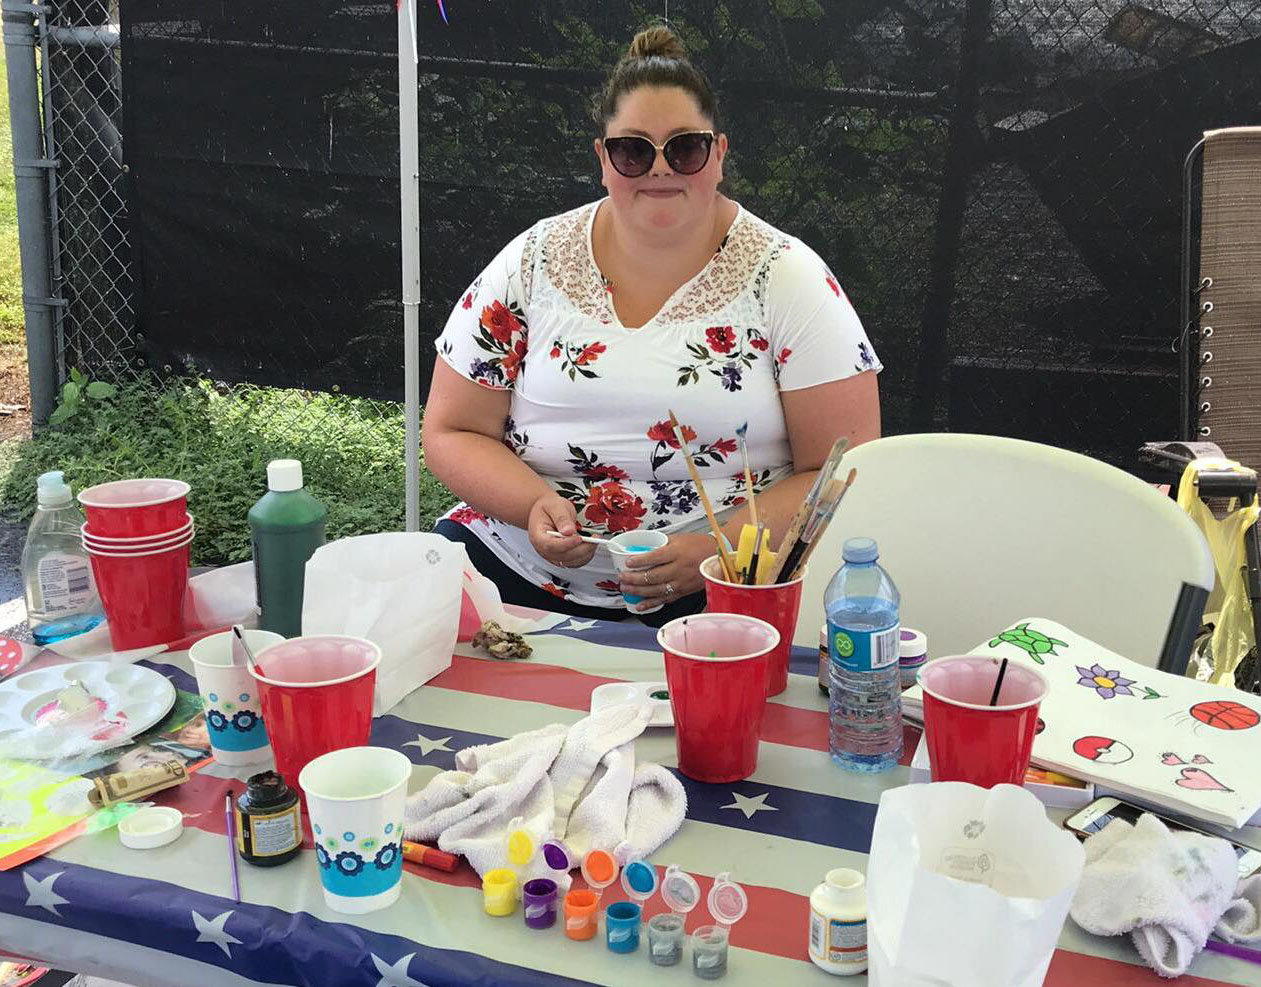 Sarah Cooper, an instructor at Commonwealth Charter Academy in Harrisburg, volunteered as a face-paint artist at the first Freedom Community Festival held by Middletown VFW Post No. 1620 Auxilliary on Aug. 17.